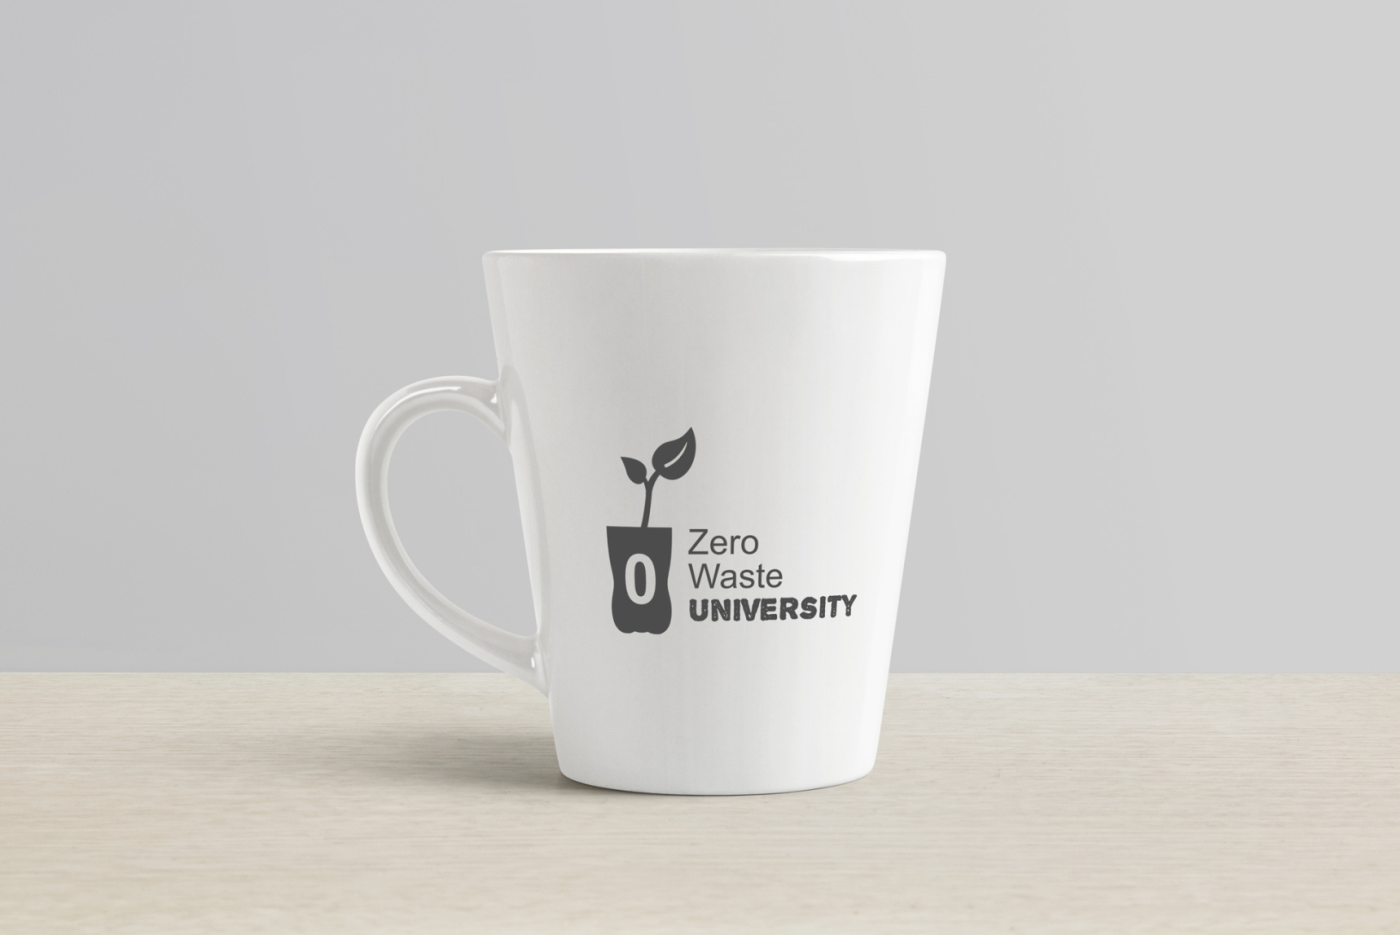 Logo projekta Zero Waste University